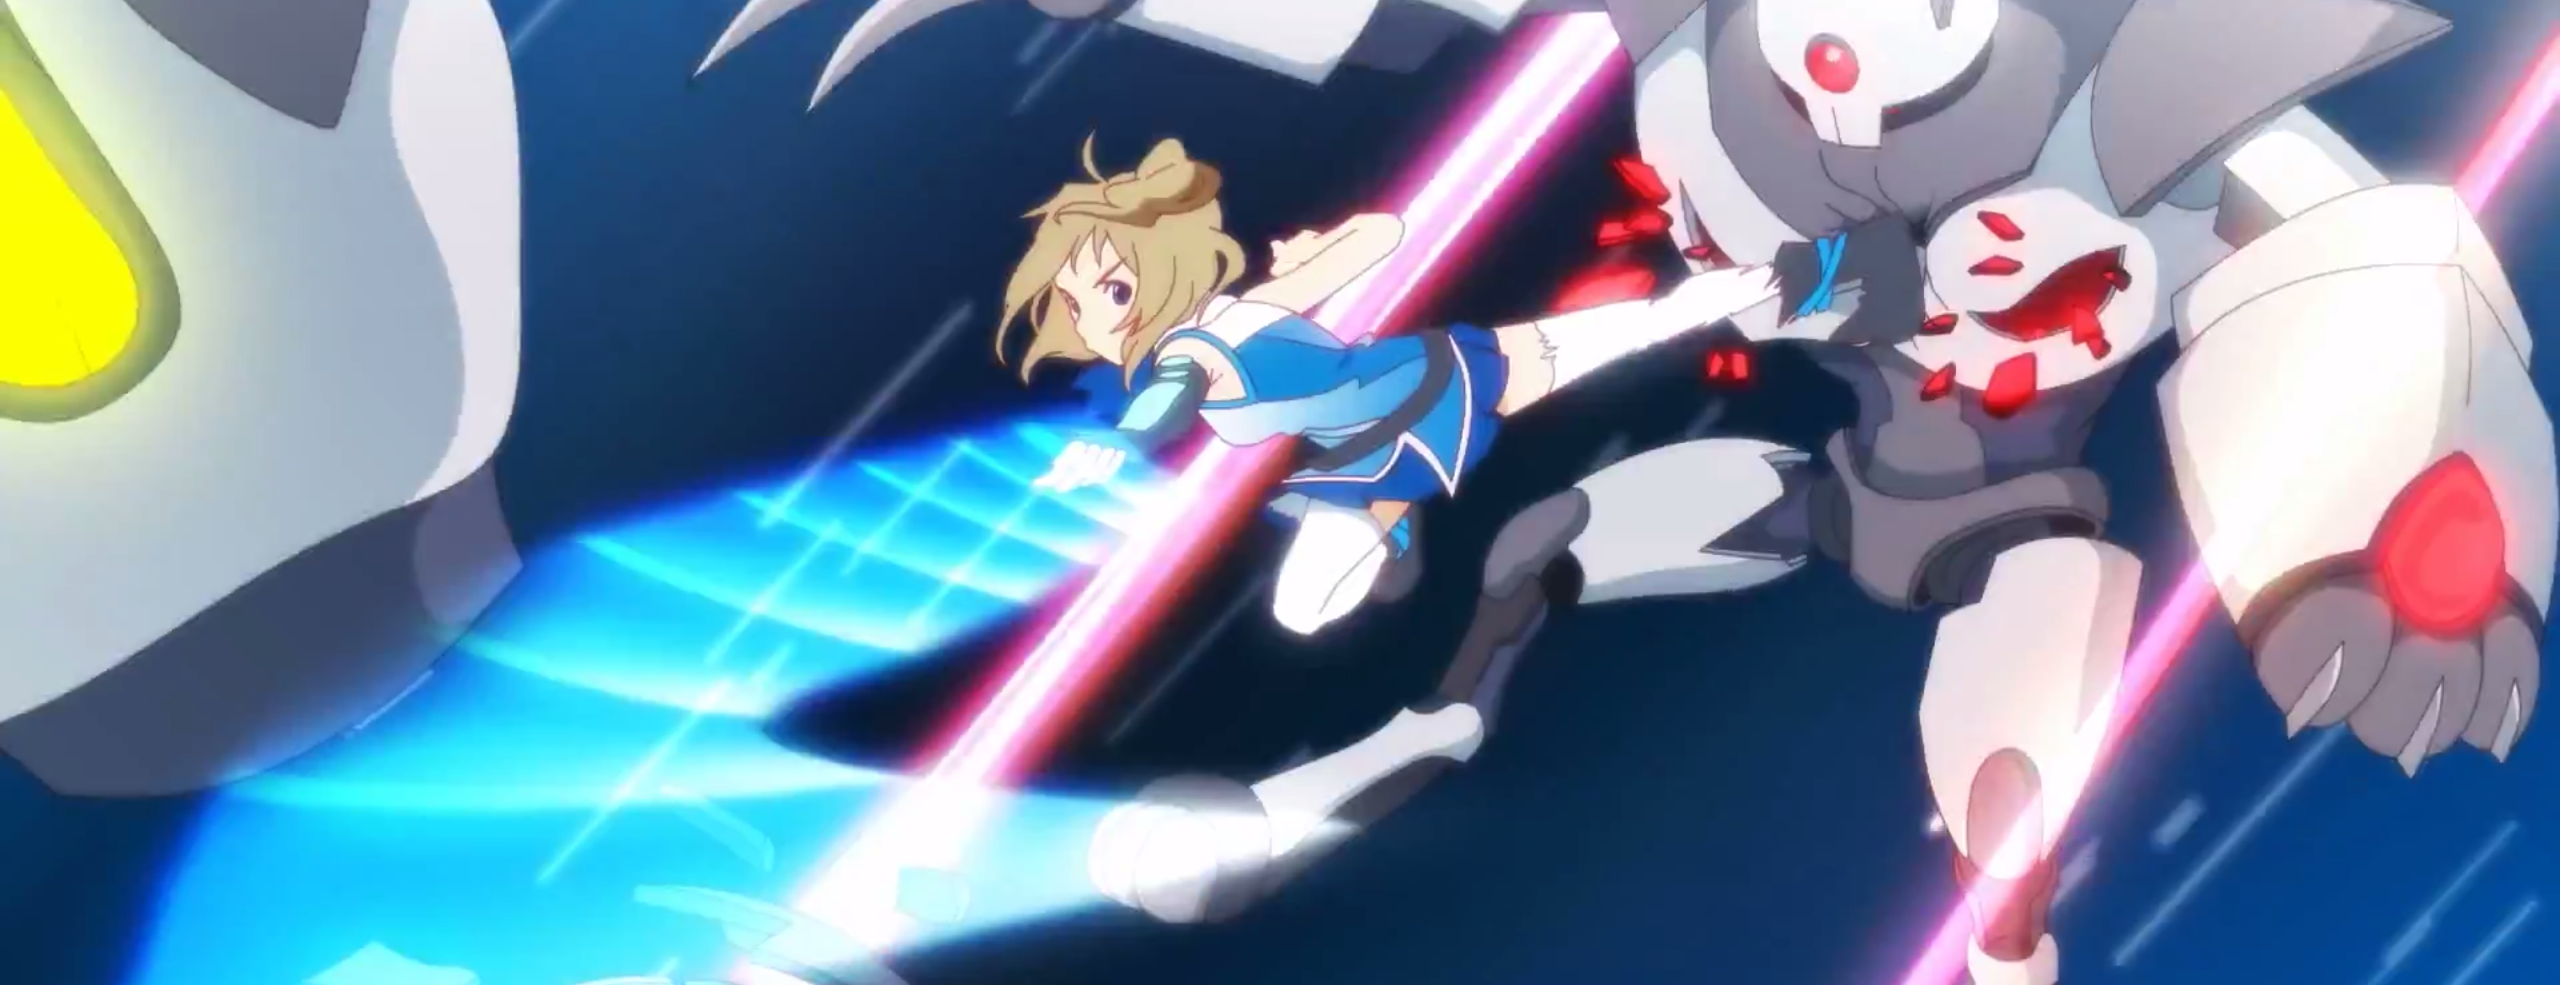 Internet Explorer's New Mascot is Anime Heroine Inori Aizawa